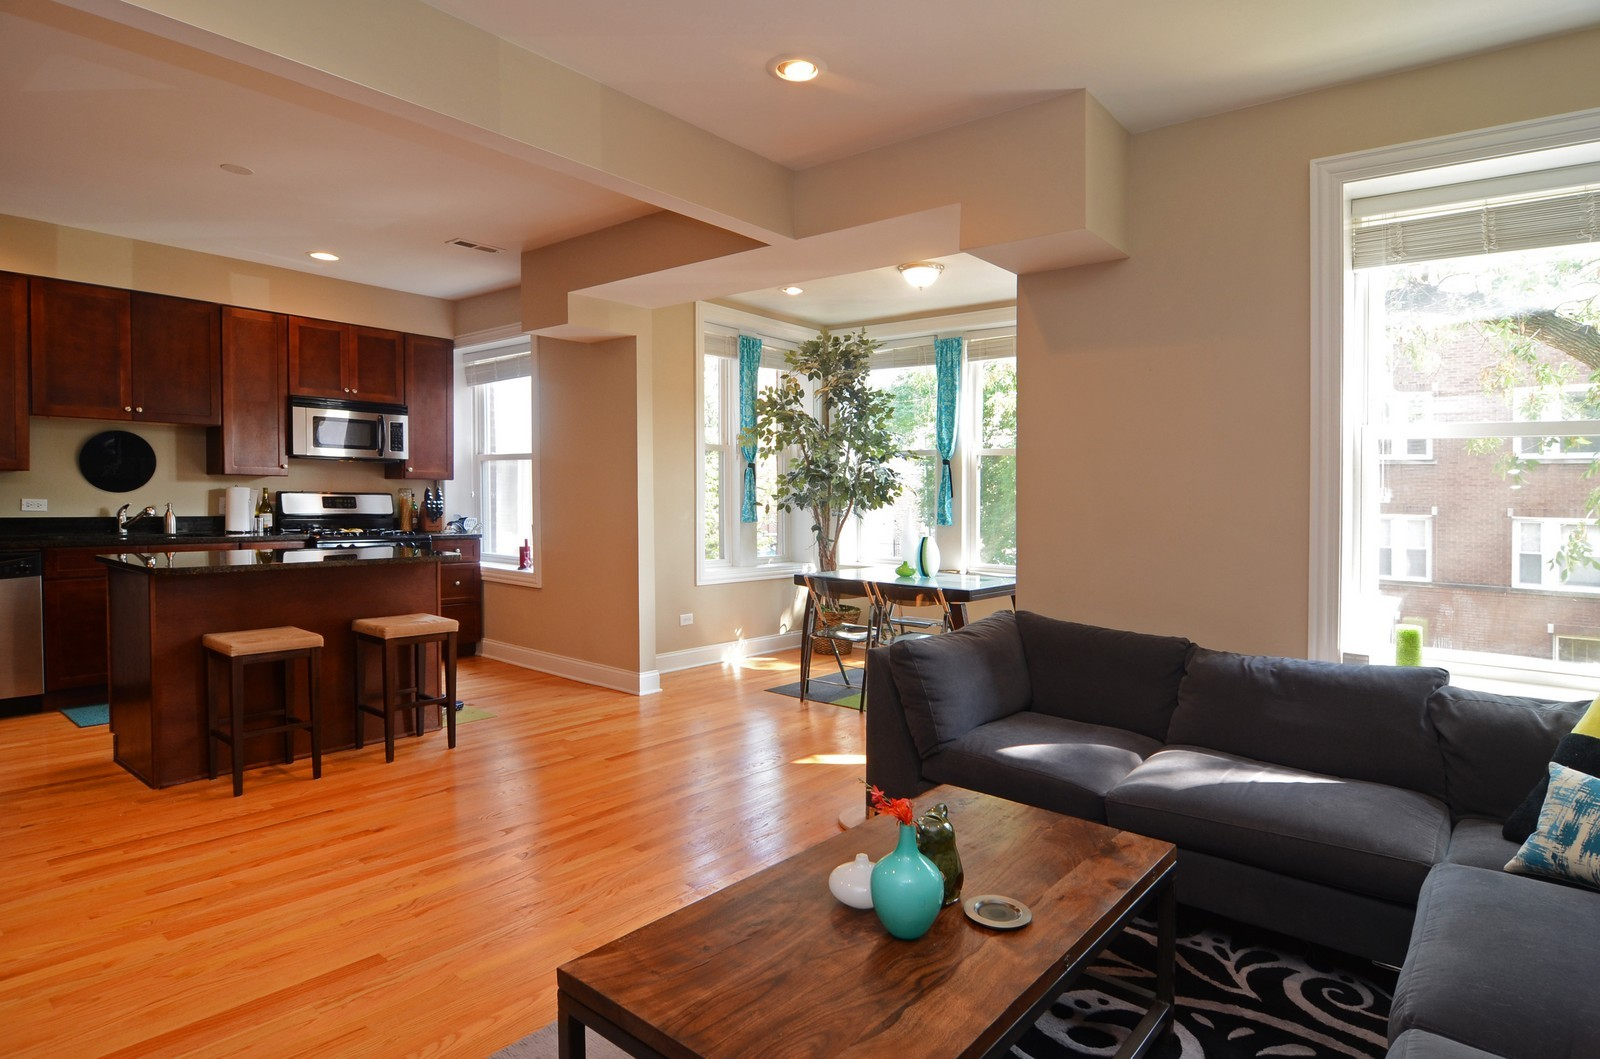 Real Estate Photography - 3516 W. Leland Ave, 1, Chicago, IL, 60625 - Kitchen / Living Room